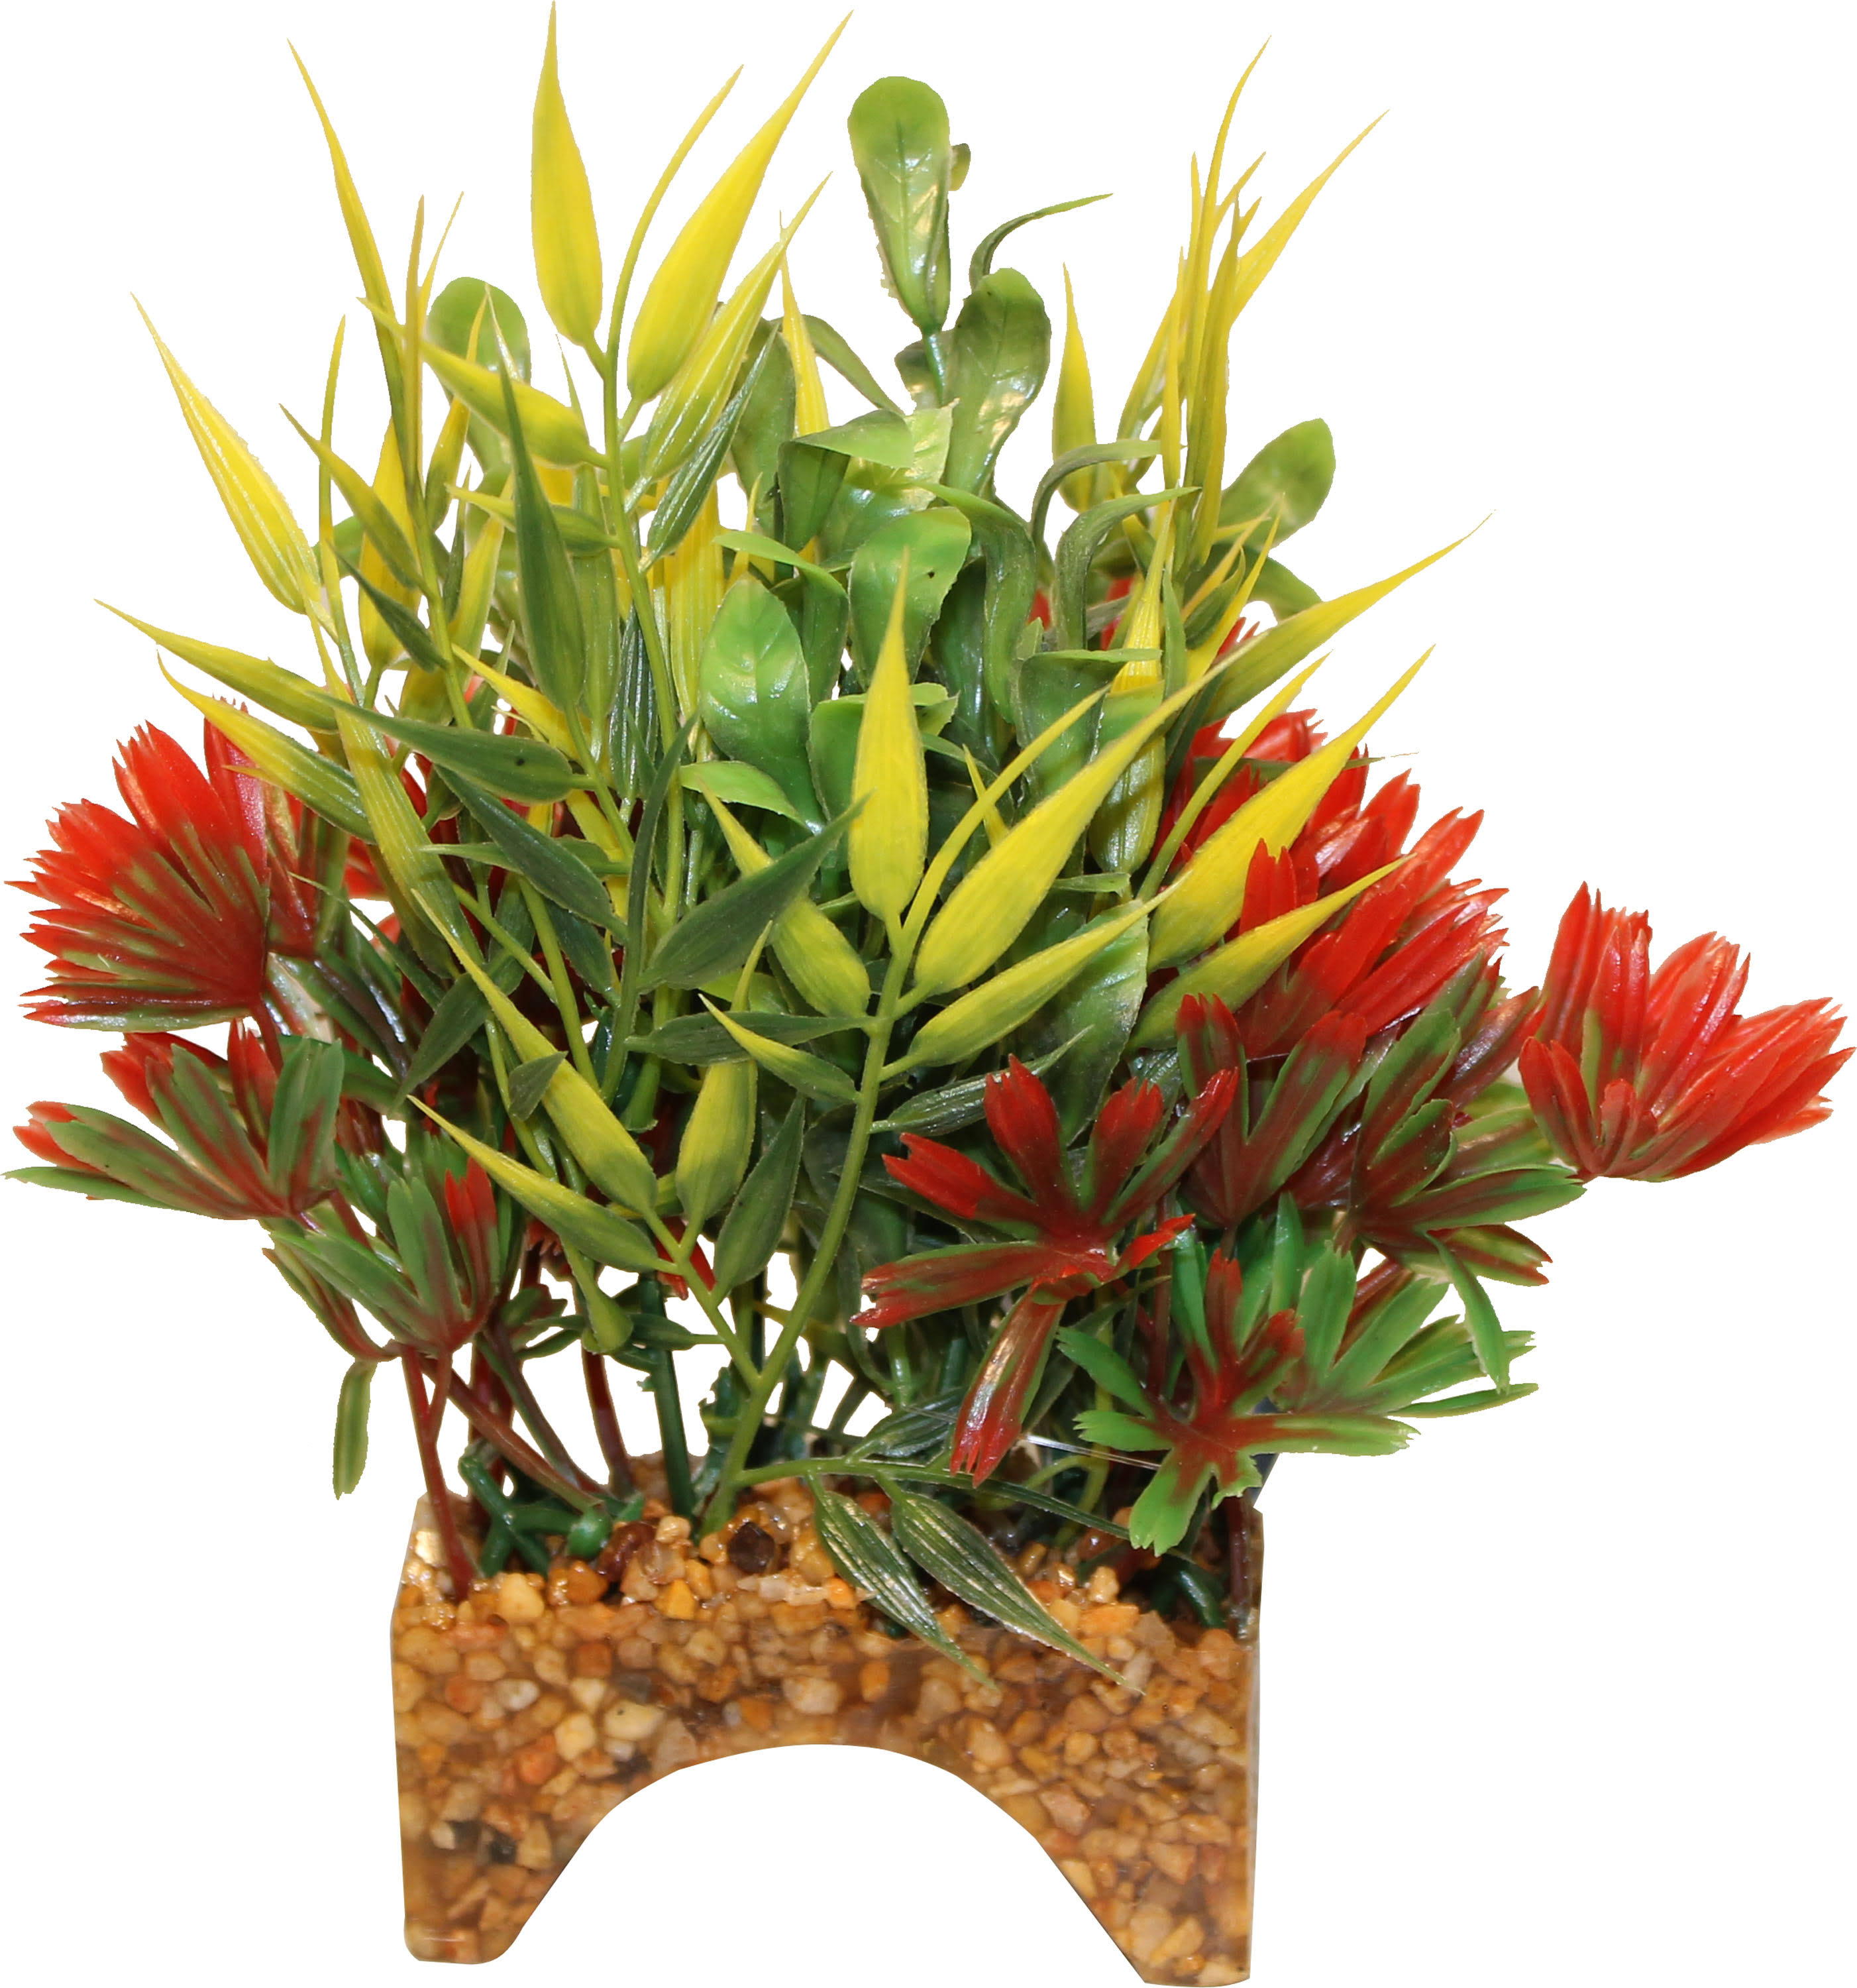 Blue Ribbon Pet Products - Archway Plant Jungle - Multi Small